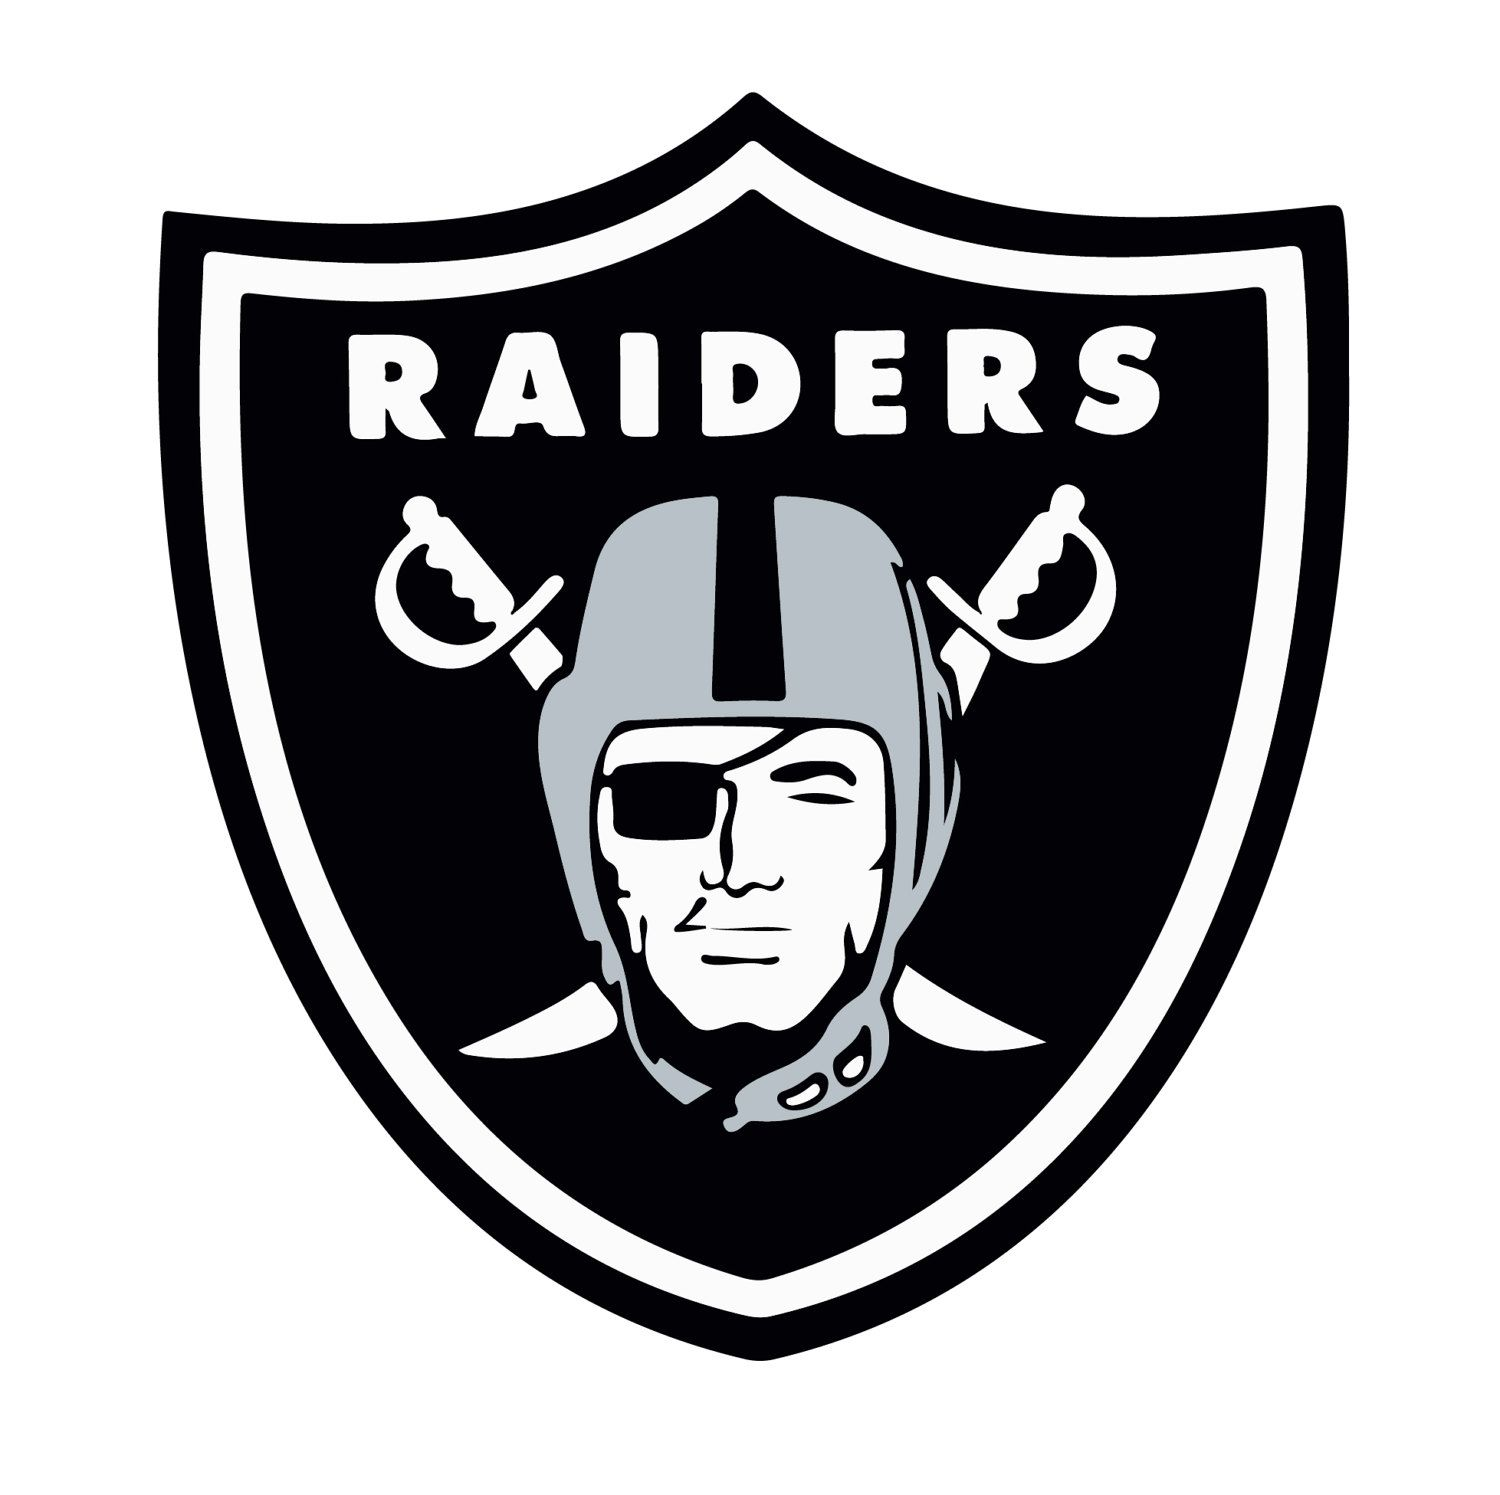 Oakland Raiders Logo Png 95 Images In Collection Page 2 Raiders Stickers Oakland Raiders Logo Raiders